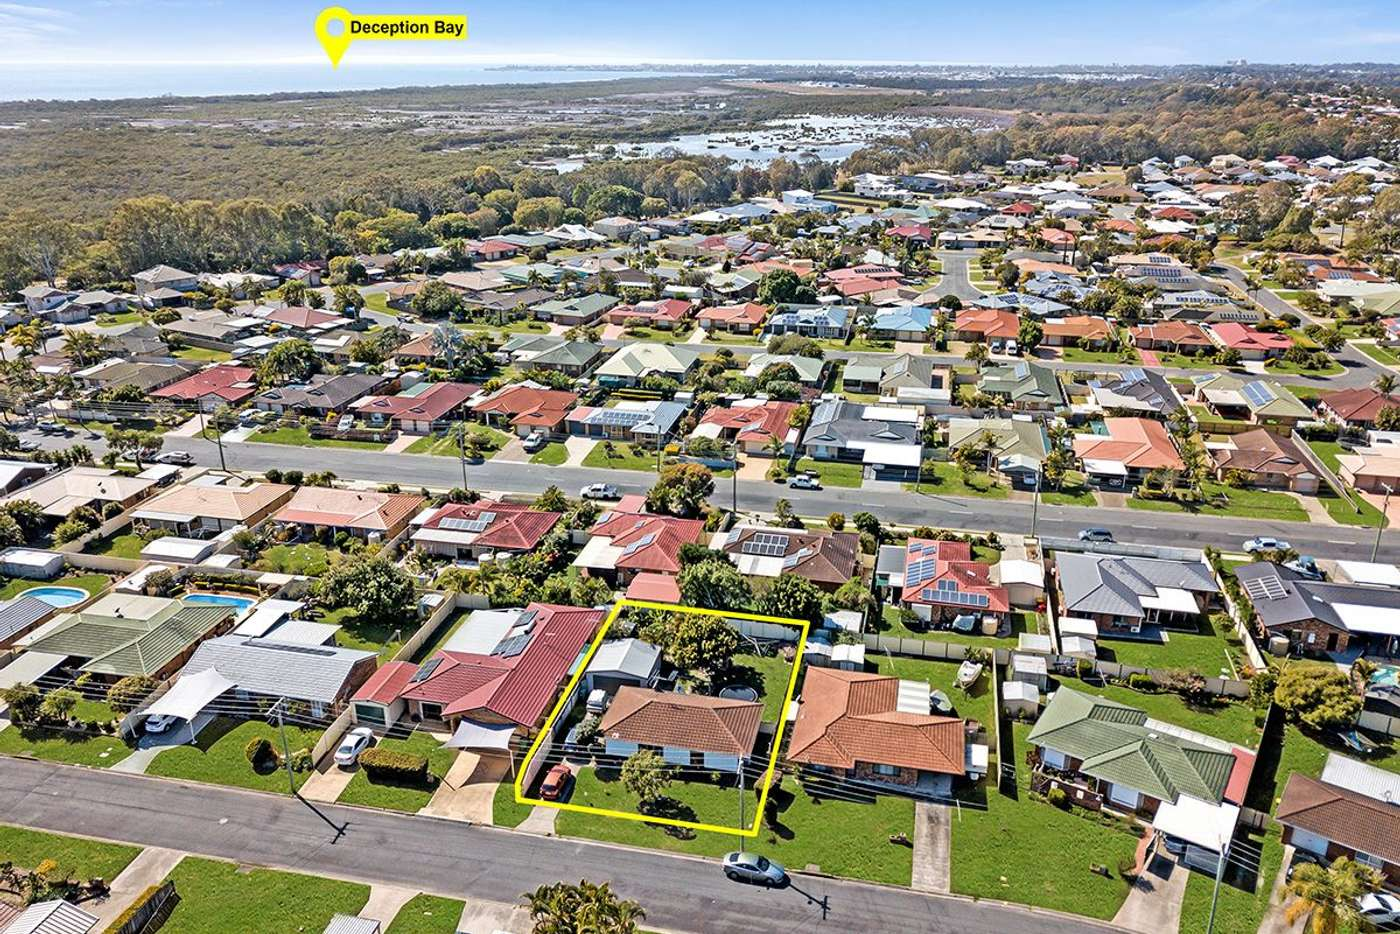 Main view of Homely house listing, 9 Diamondcrest Avenue, Deception Bay QLD 4508